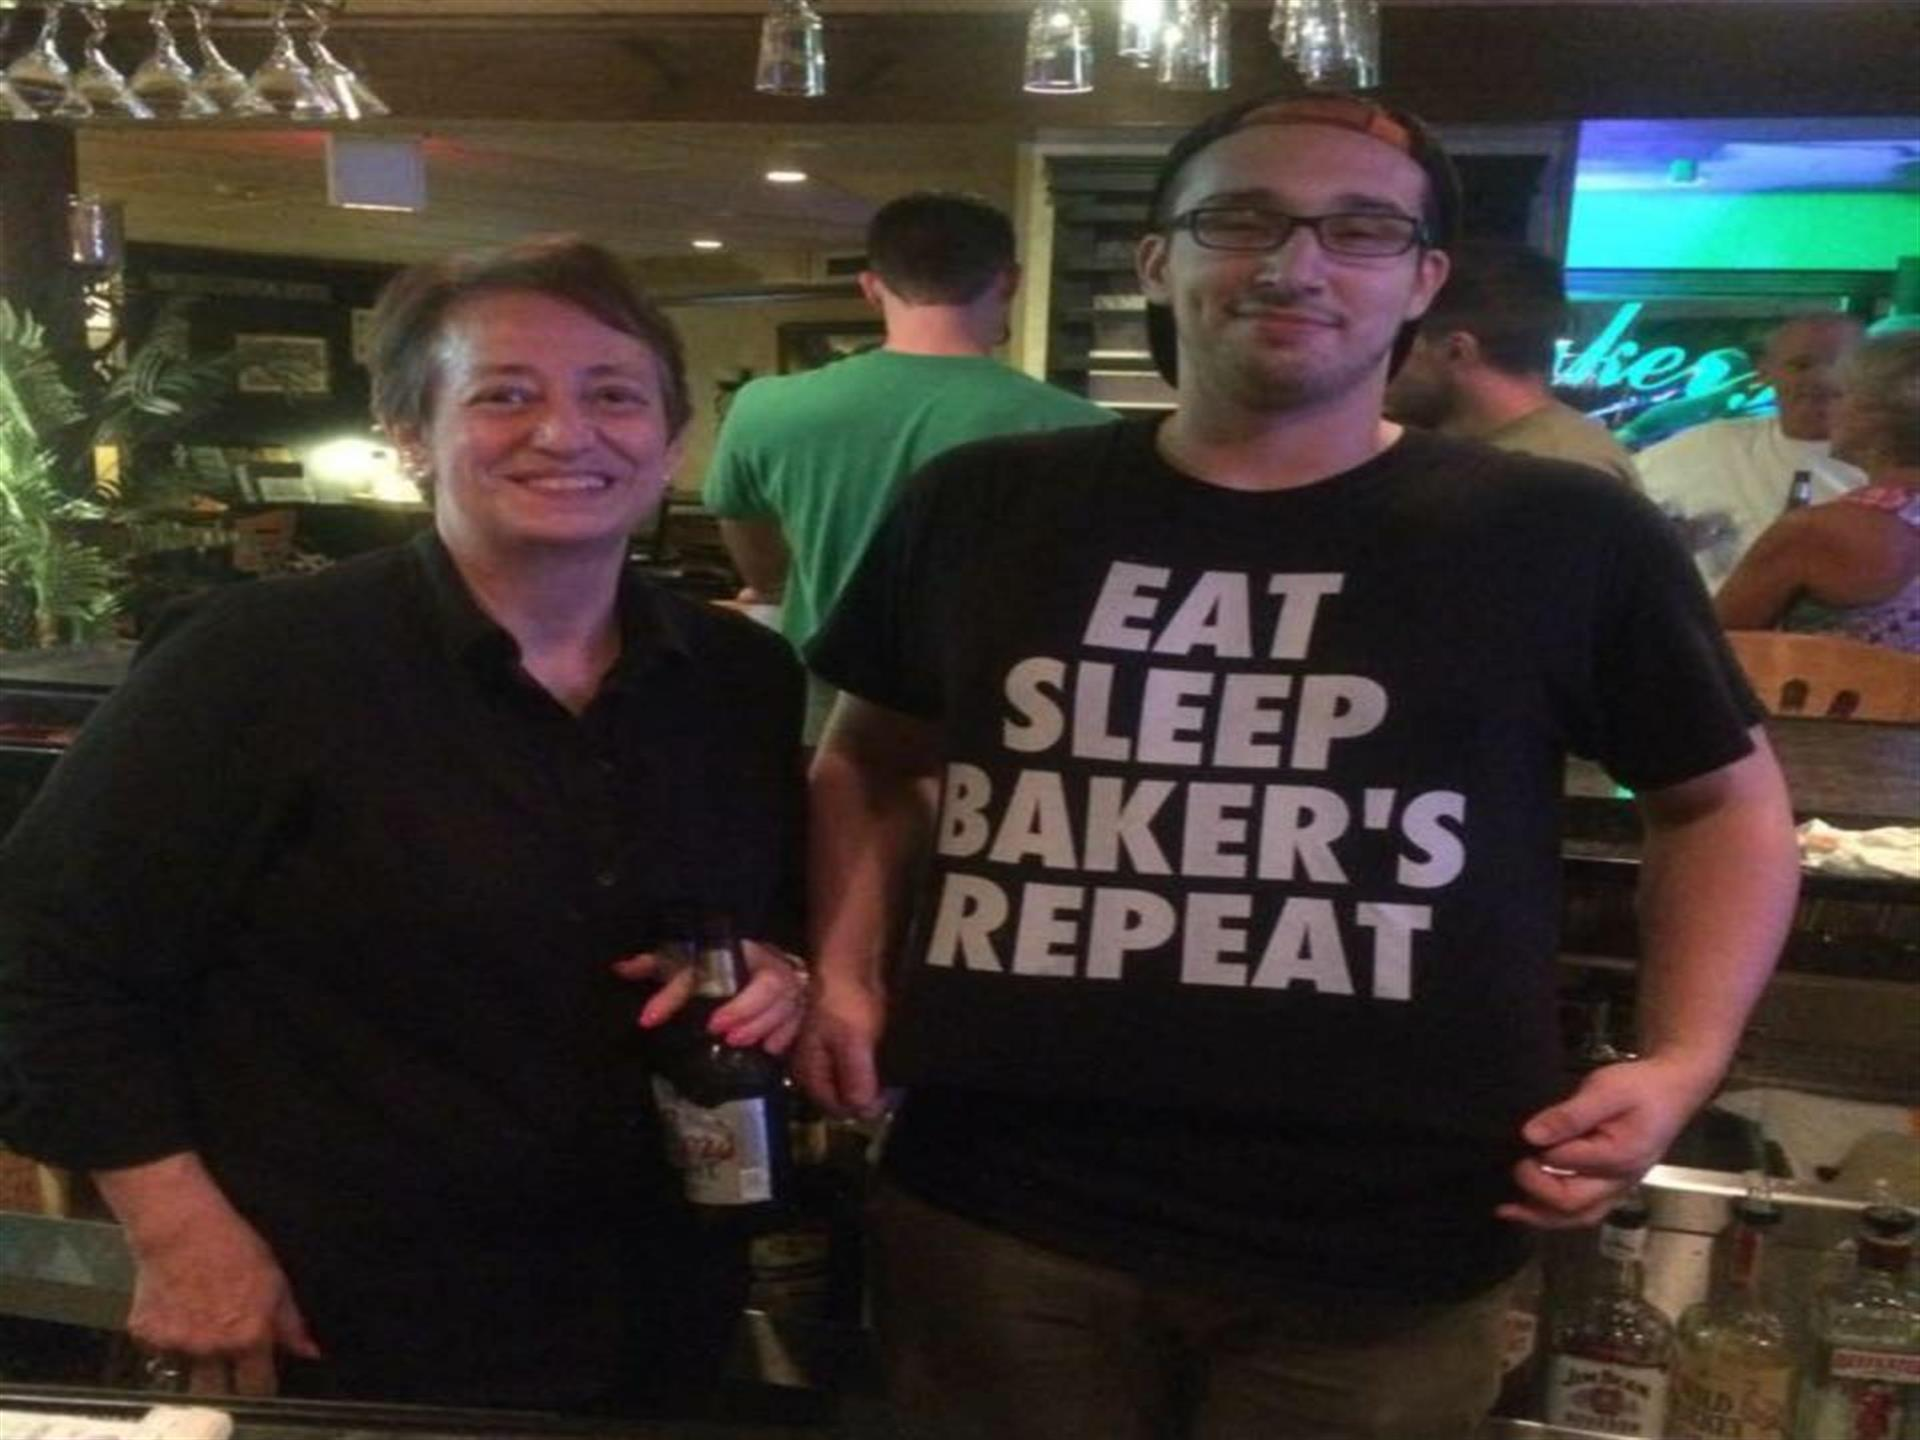 Woman and man Employees behind bar.  Man wearing tee shirt reading Eat, sleep, bakers, repeat.